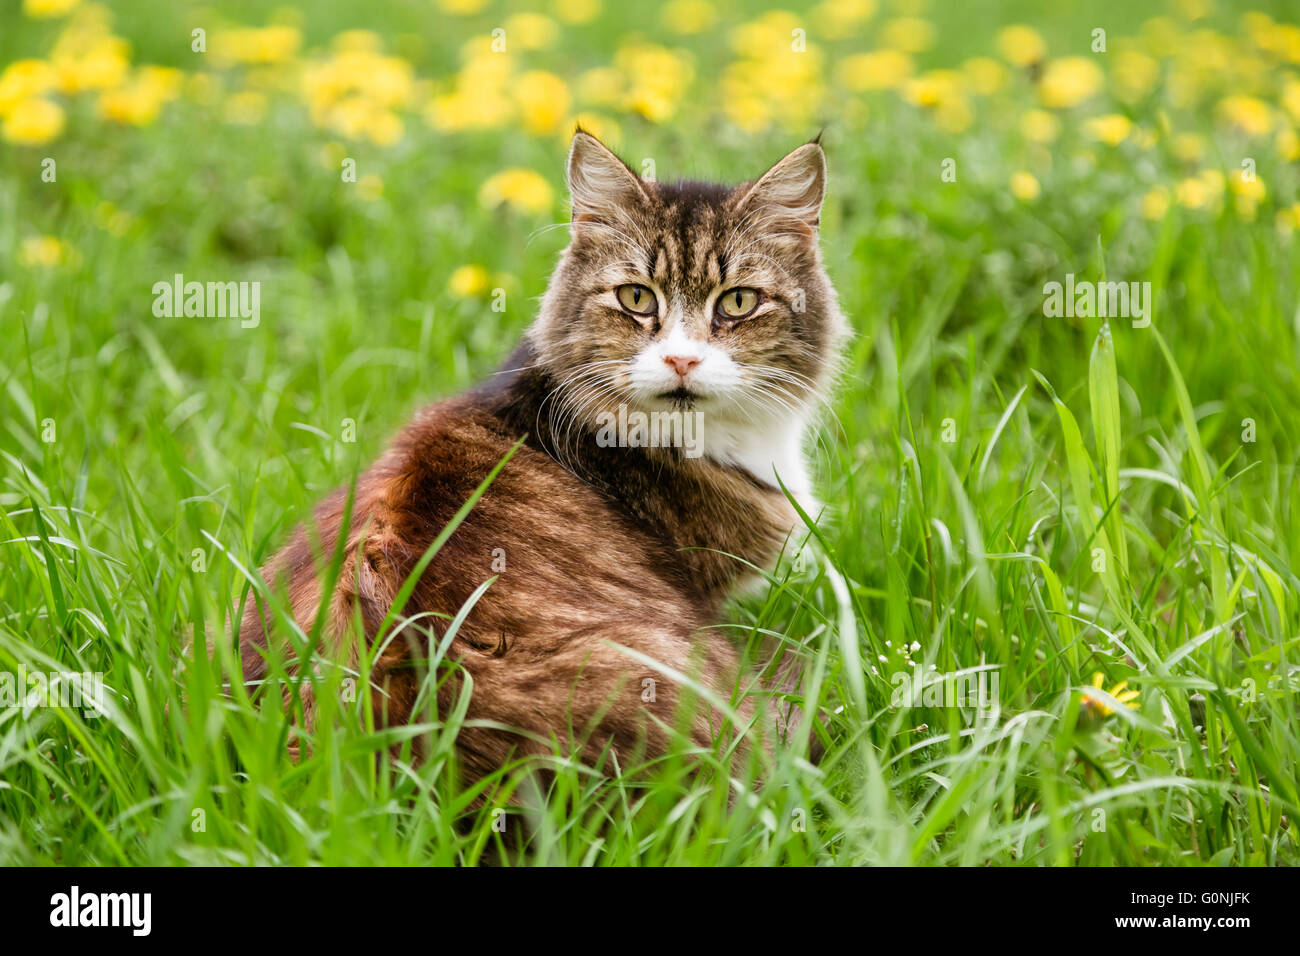 Portrait of frightened cat sitting in the lawn - Stock Image